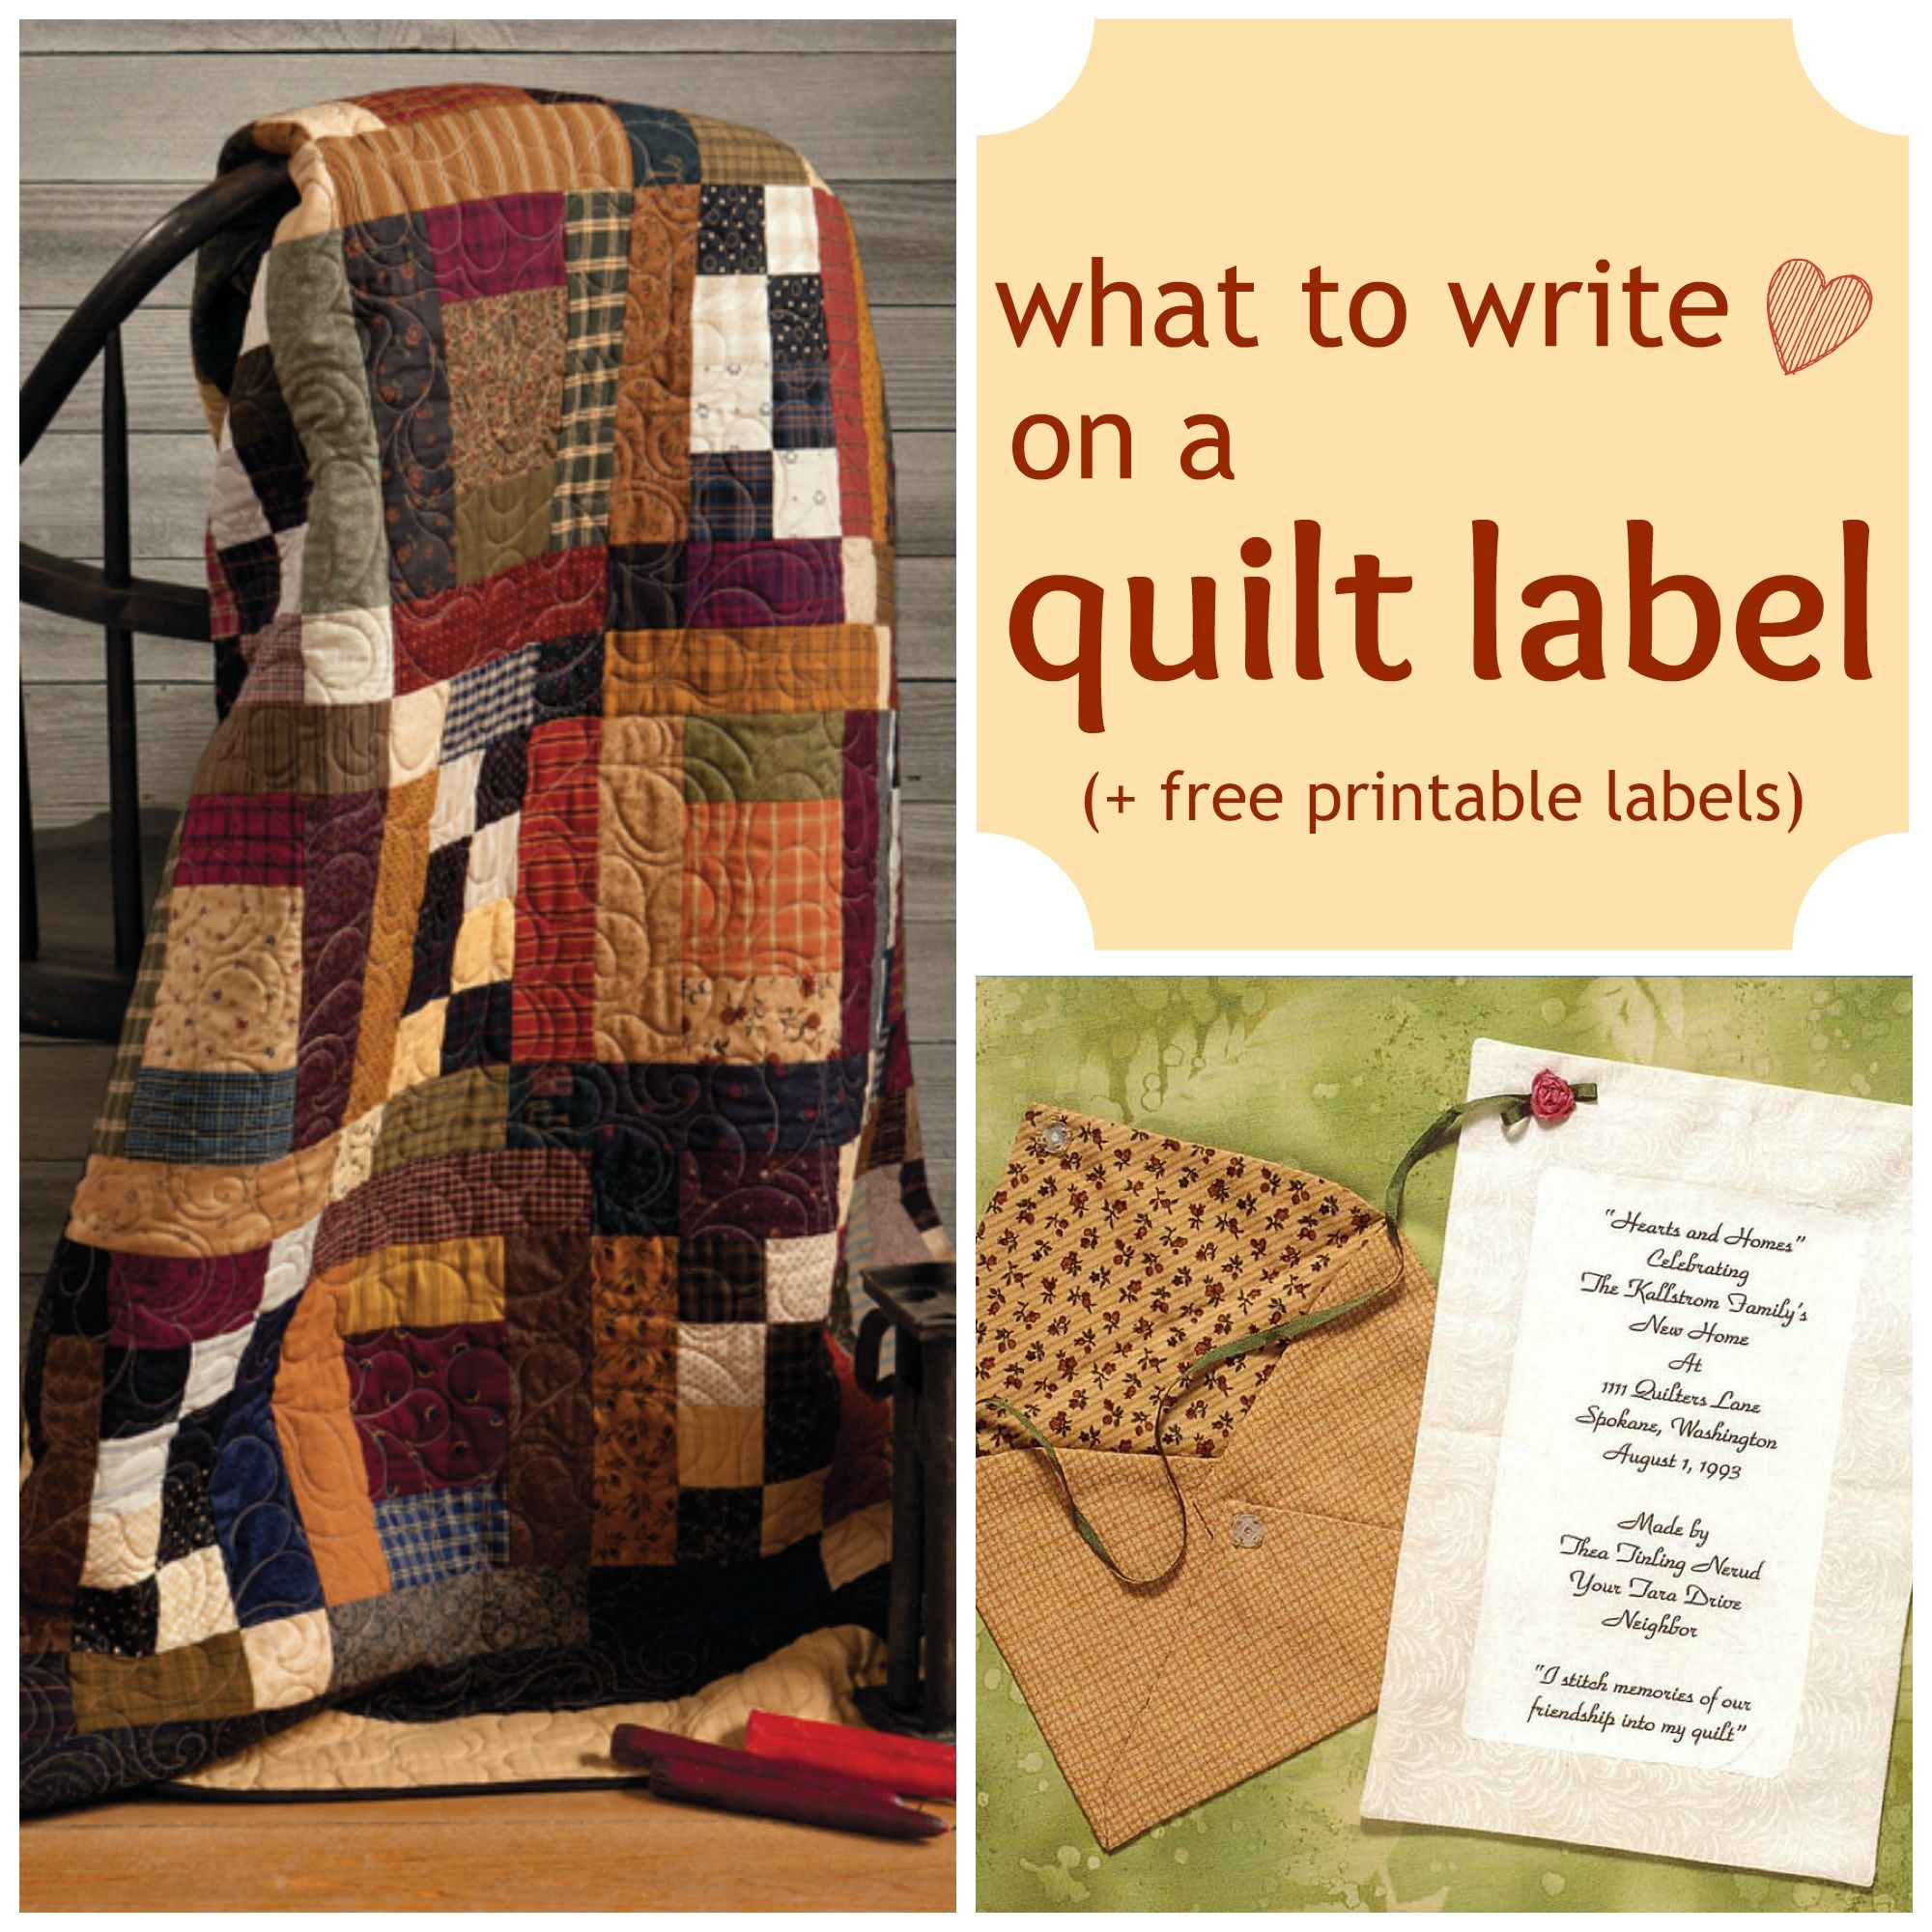 What to write on a quilt label + FREE printable labels | Handmade ... : pinterest quilting tips - Adamdwight.com